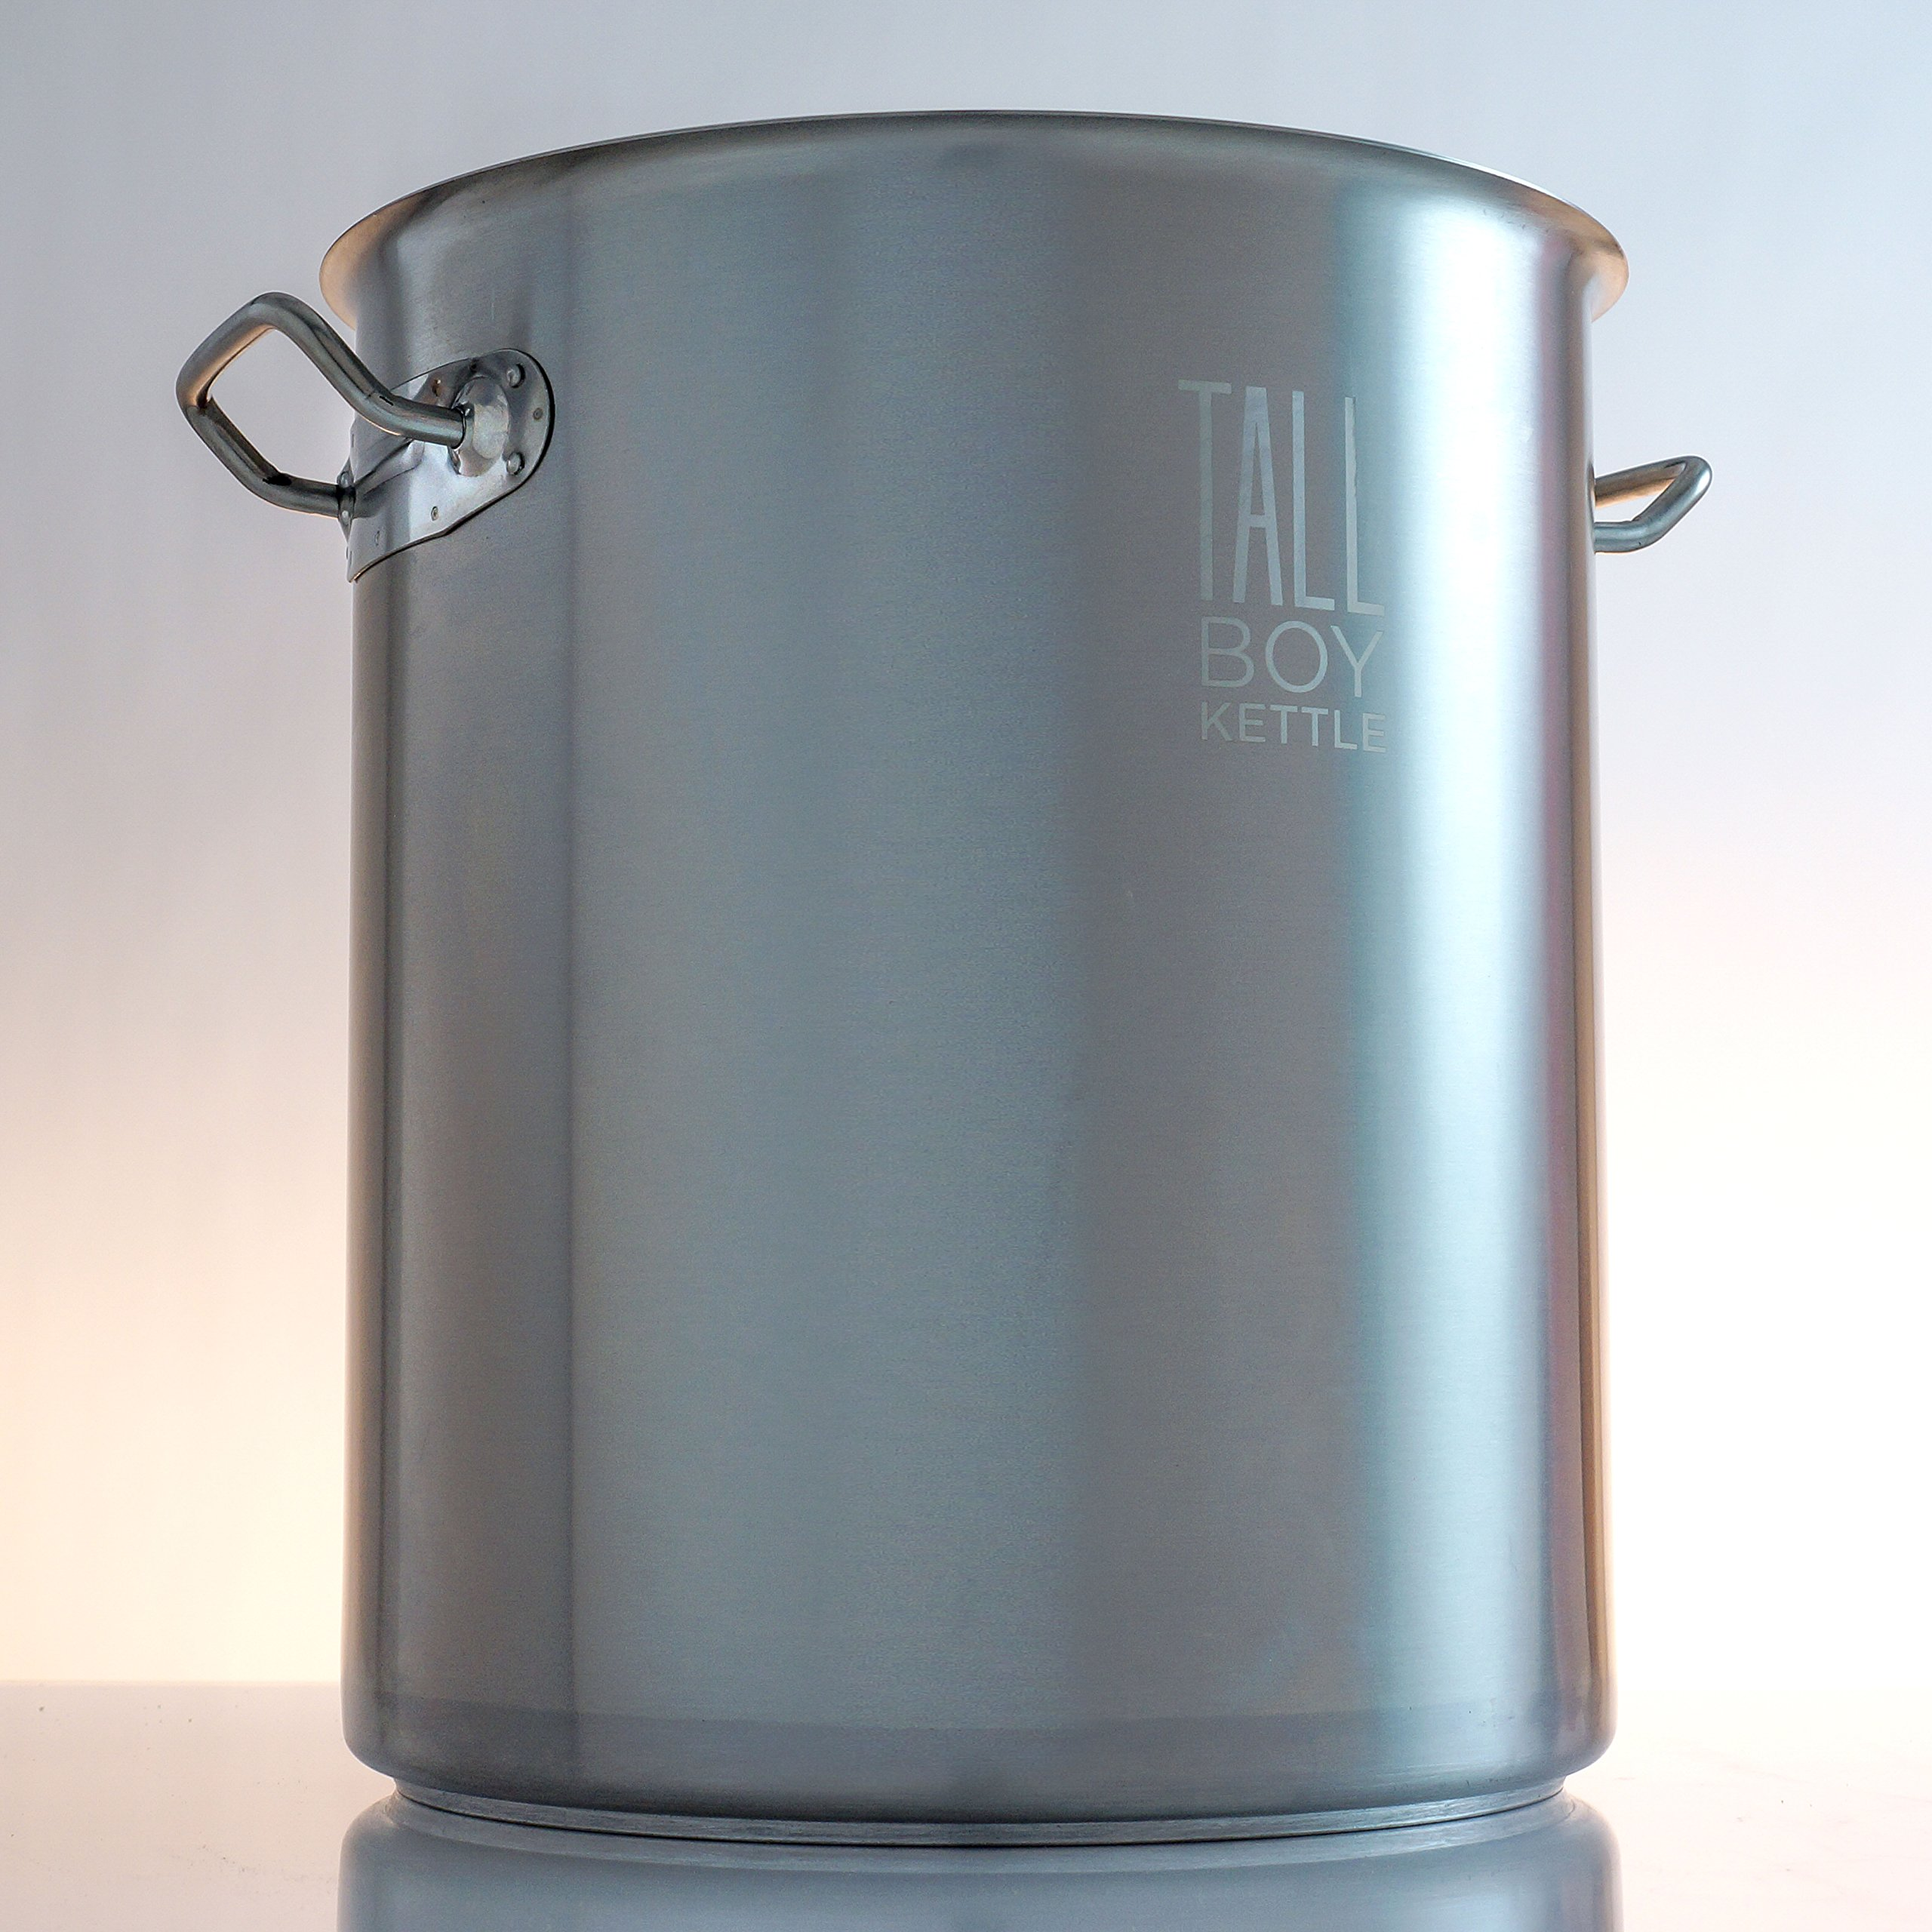 Tall Boy Home Brewing Kettle Stainless Steel Stock Pot - 8 Gallon - 32 Quart